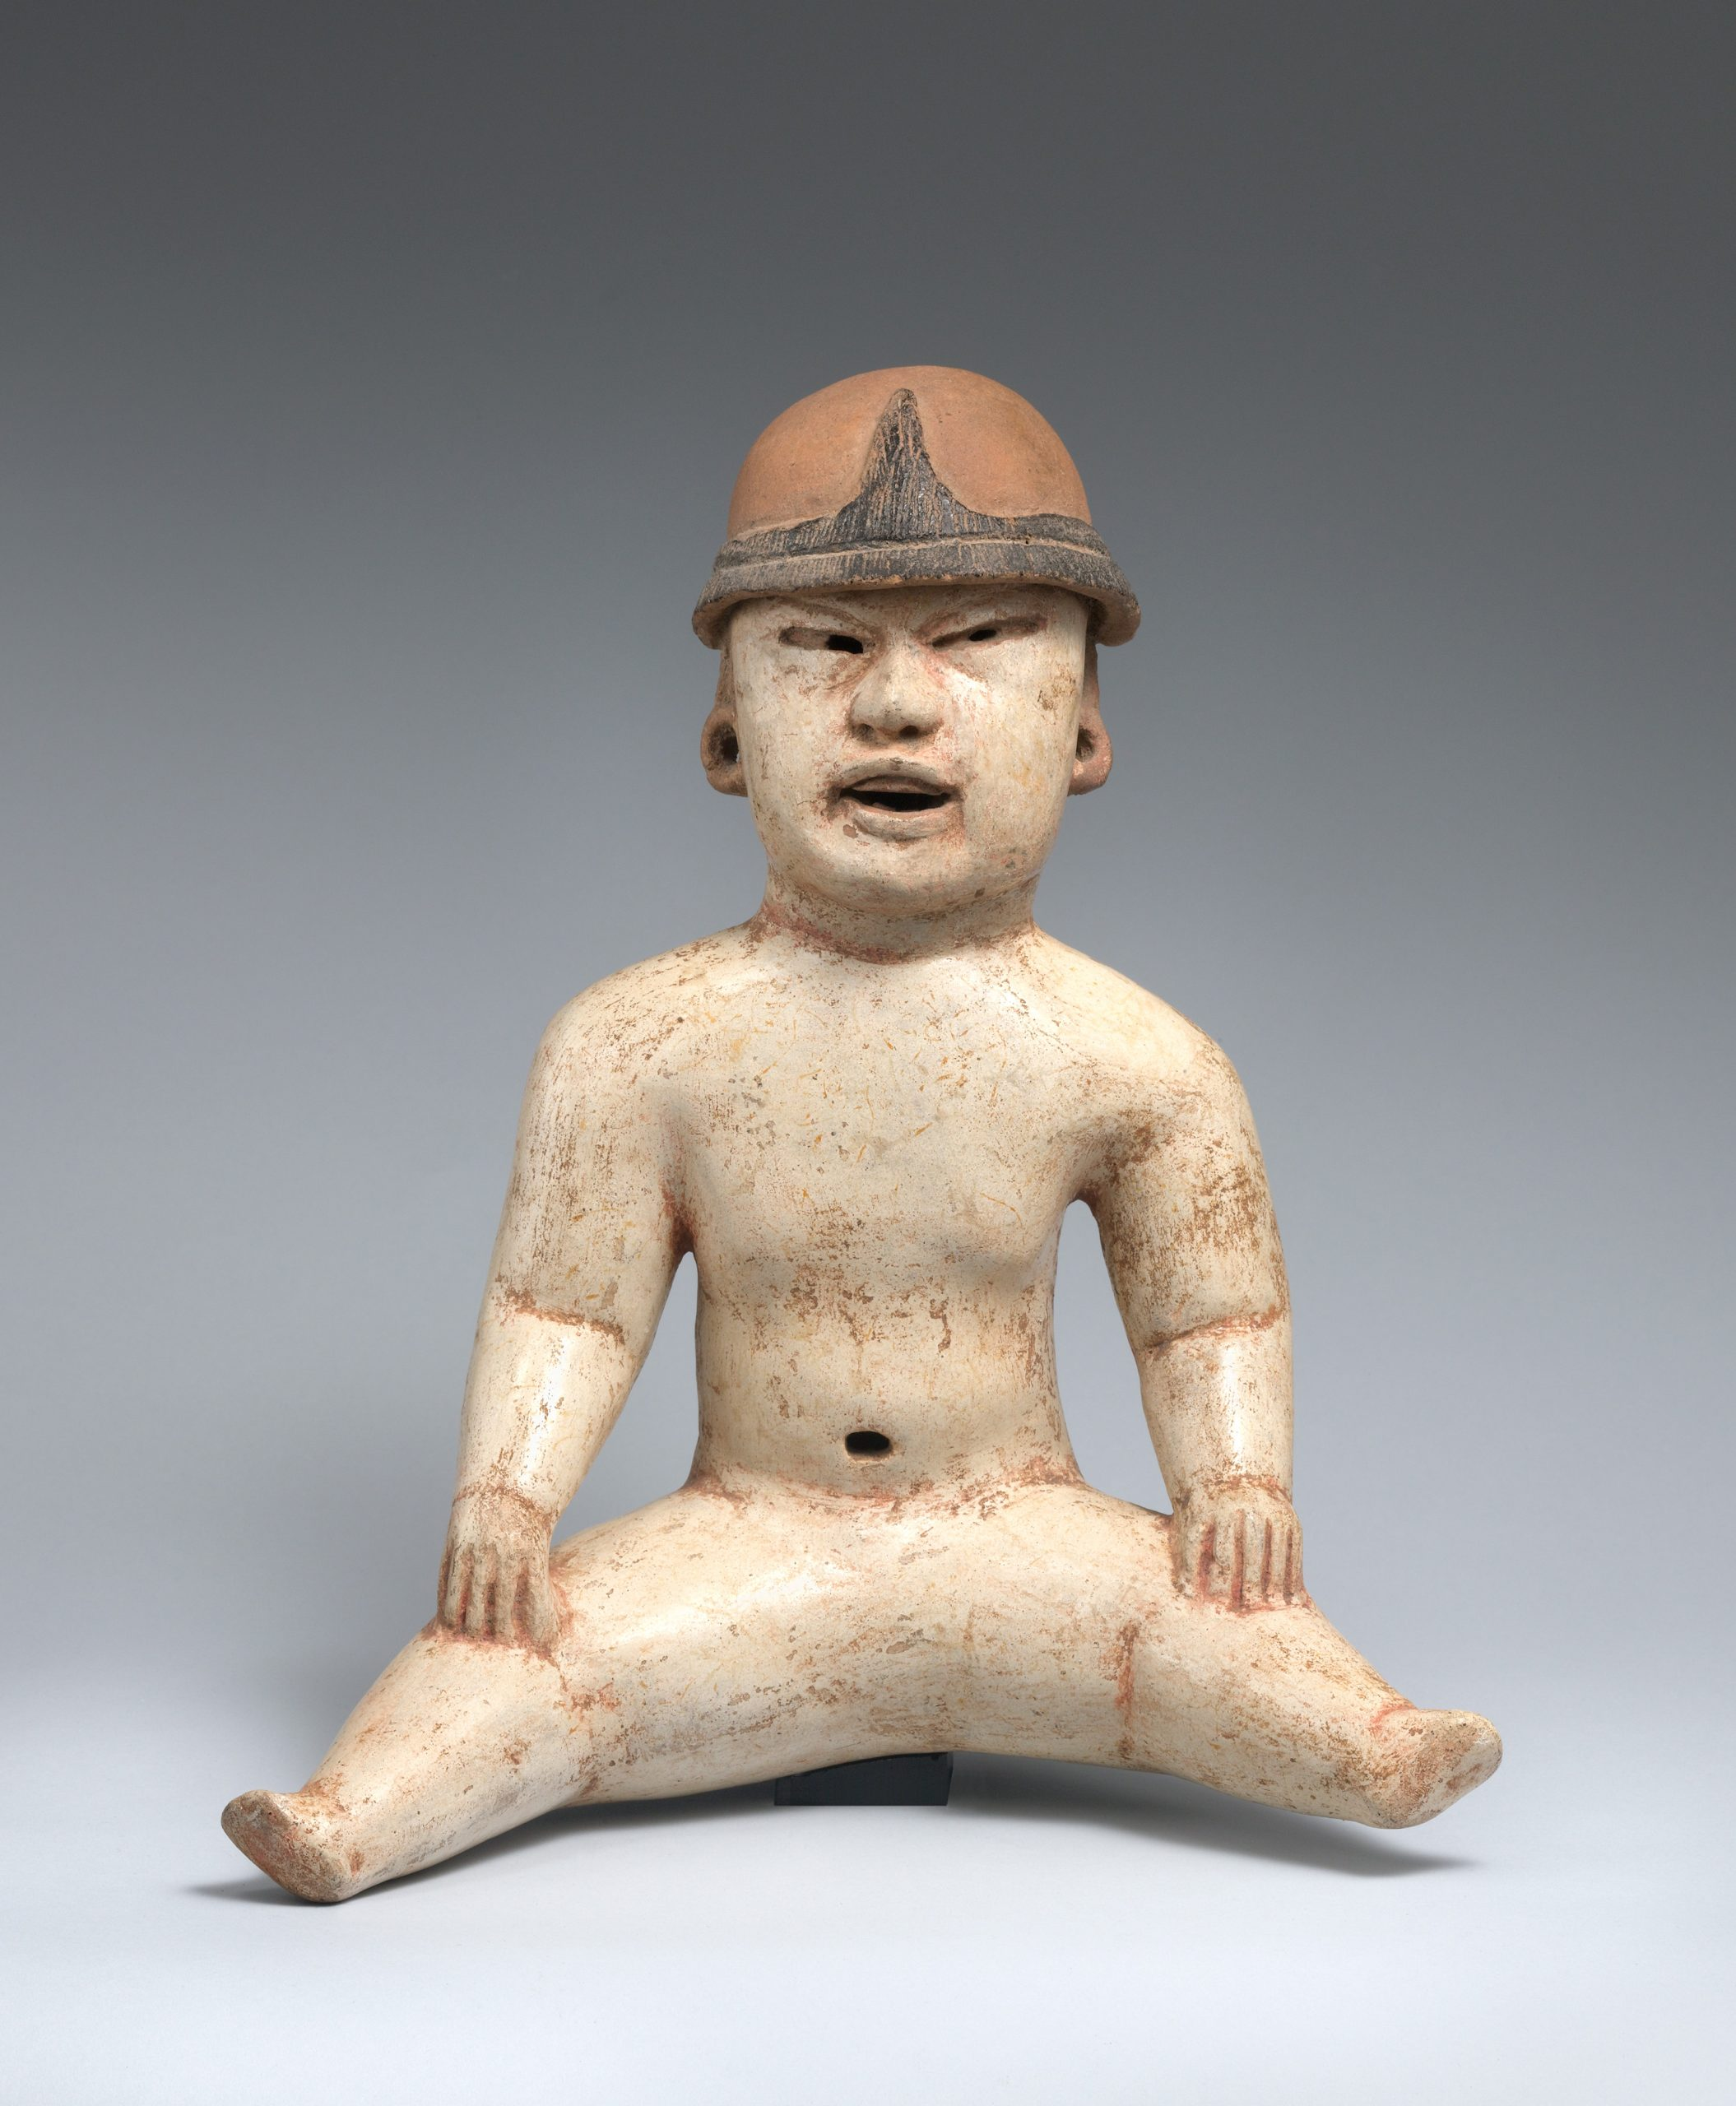 Ceramic seated figure of a baby with a white round body, open mouth, and red head covering.